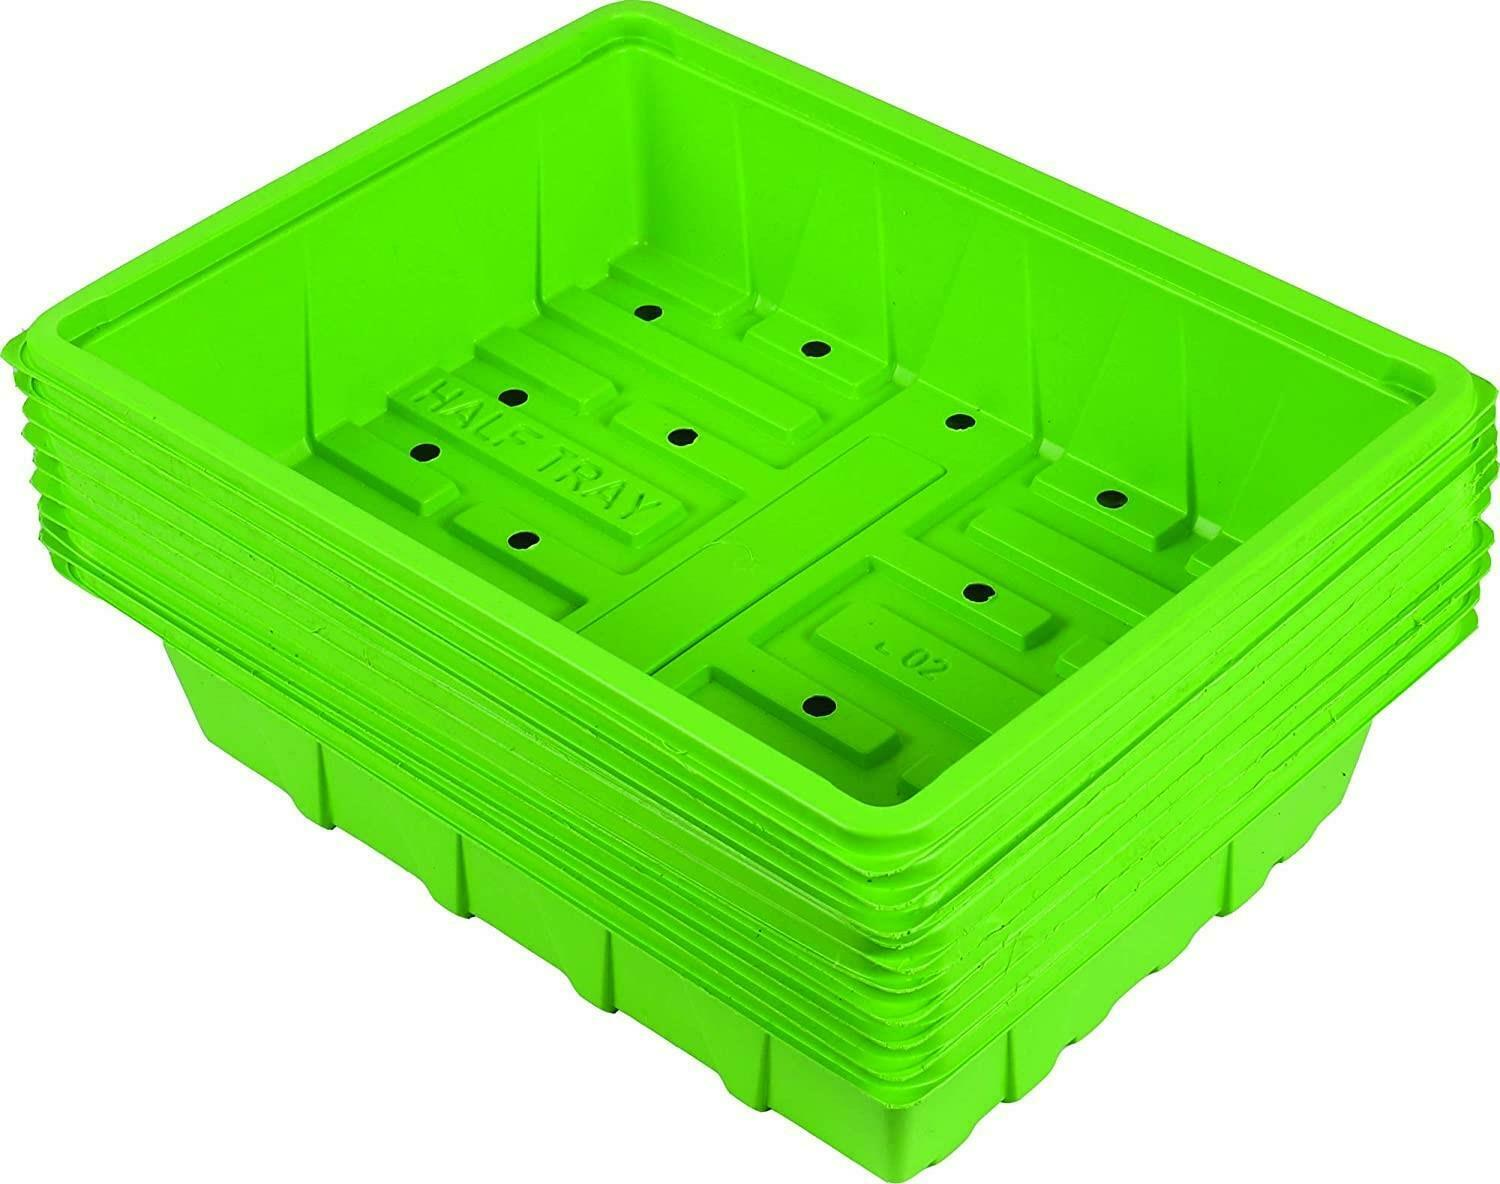 Outdoor Gardening 10 Pack Half Size Plastic Seed Trays with Drainage Holes